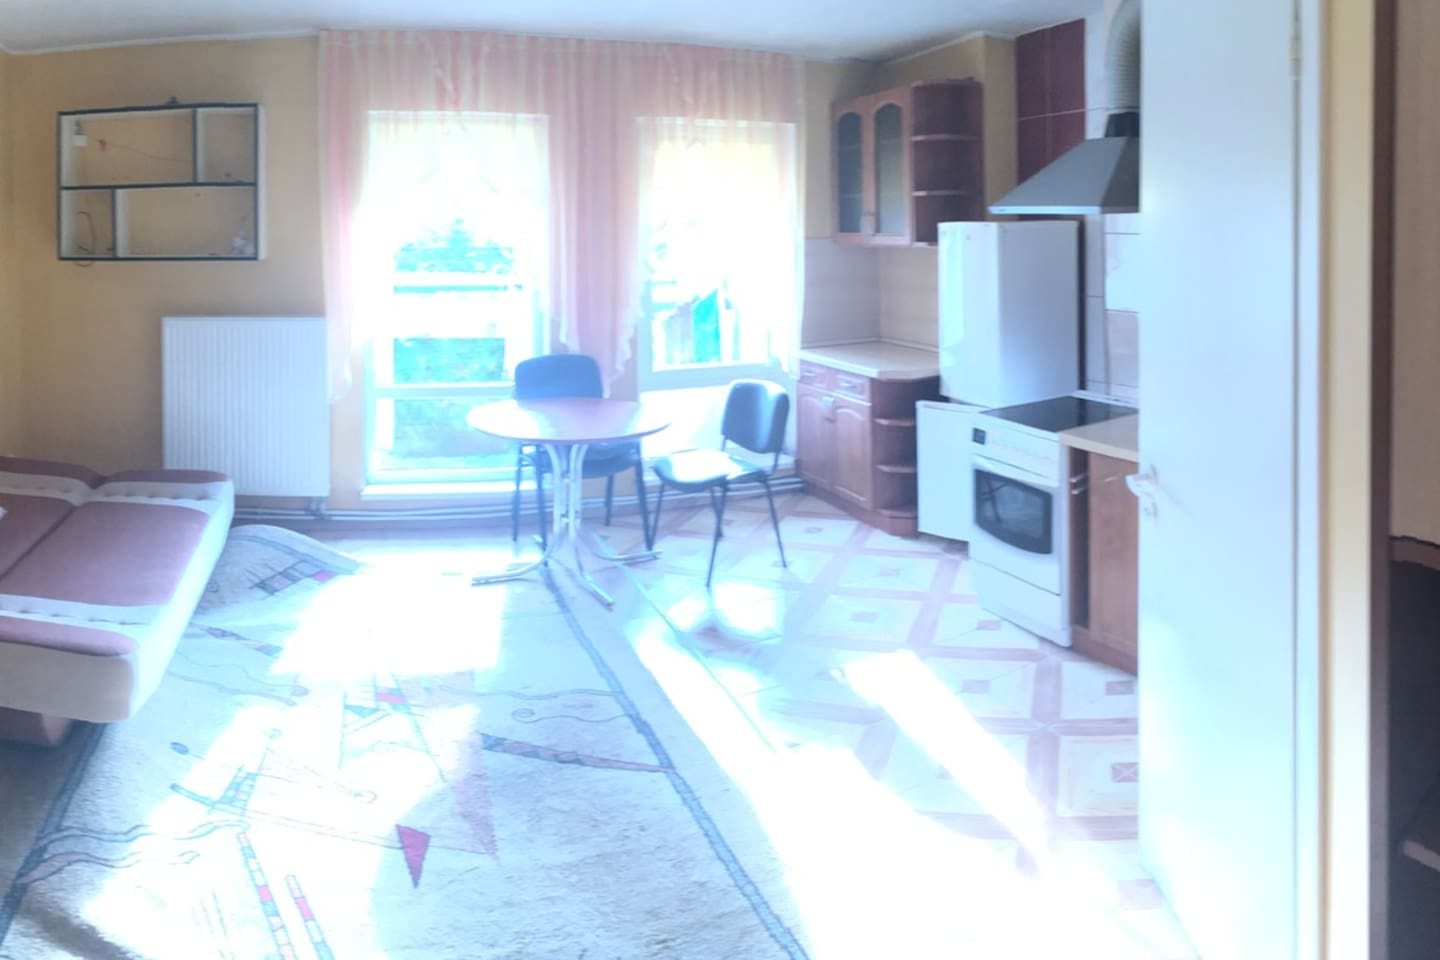 Sunny big room with kitchen and good furnitures